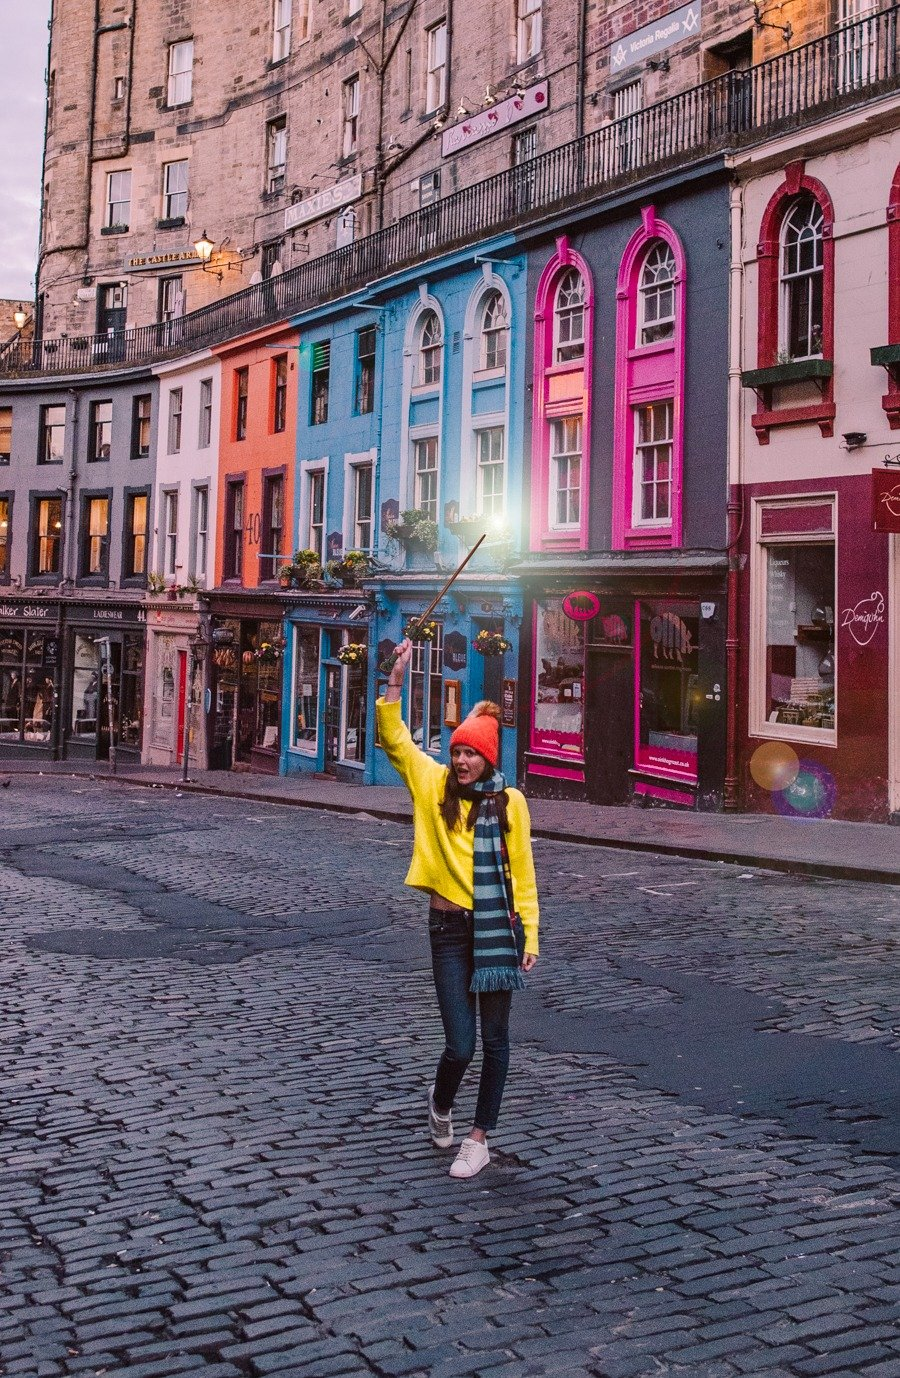 Victoria Street in Edinburgh is known as the inspiration for Diagon Alley in Harry Potter